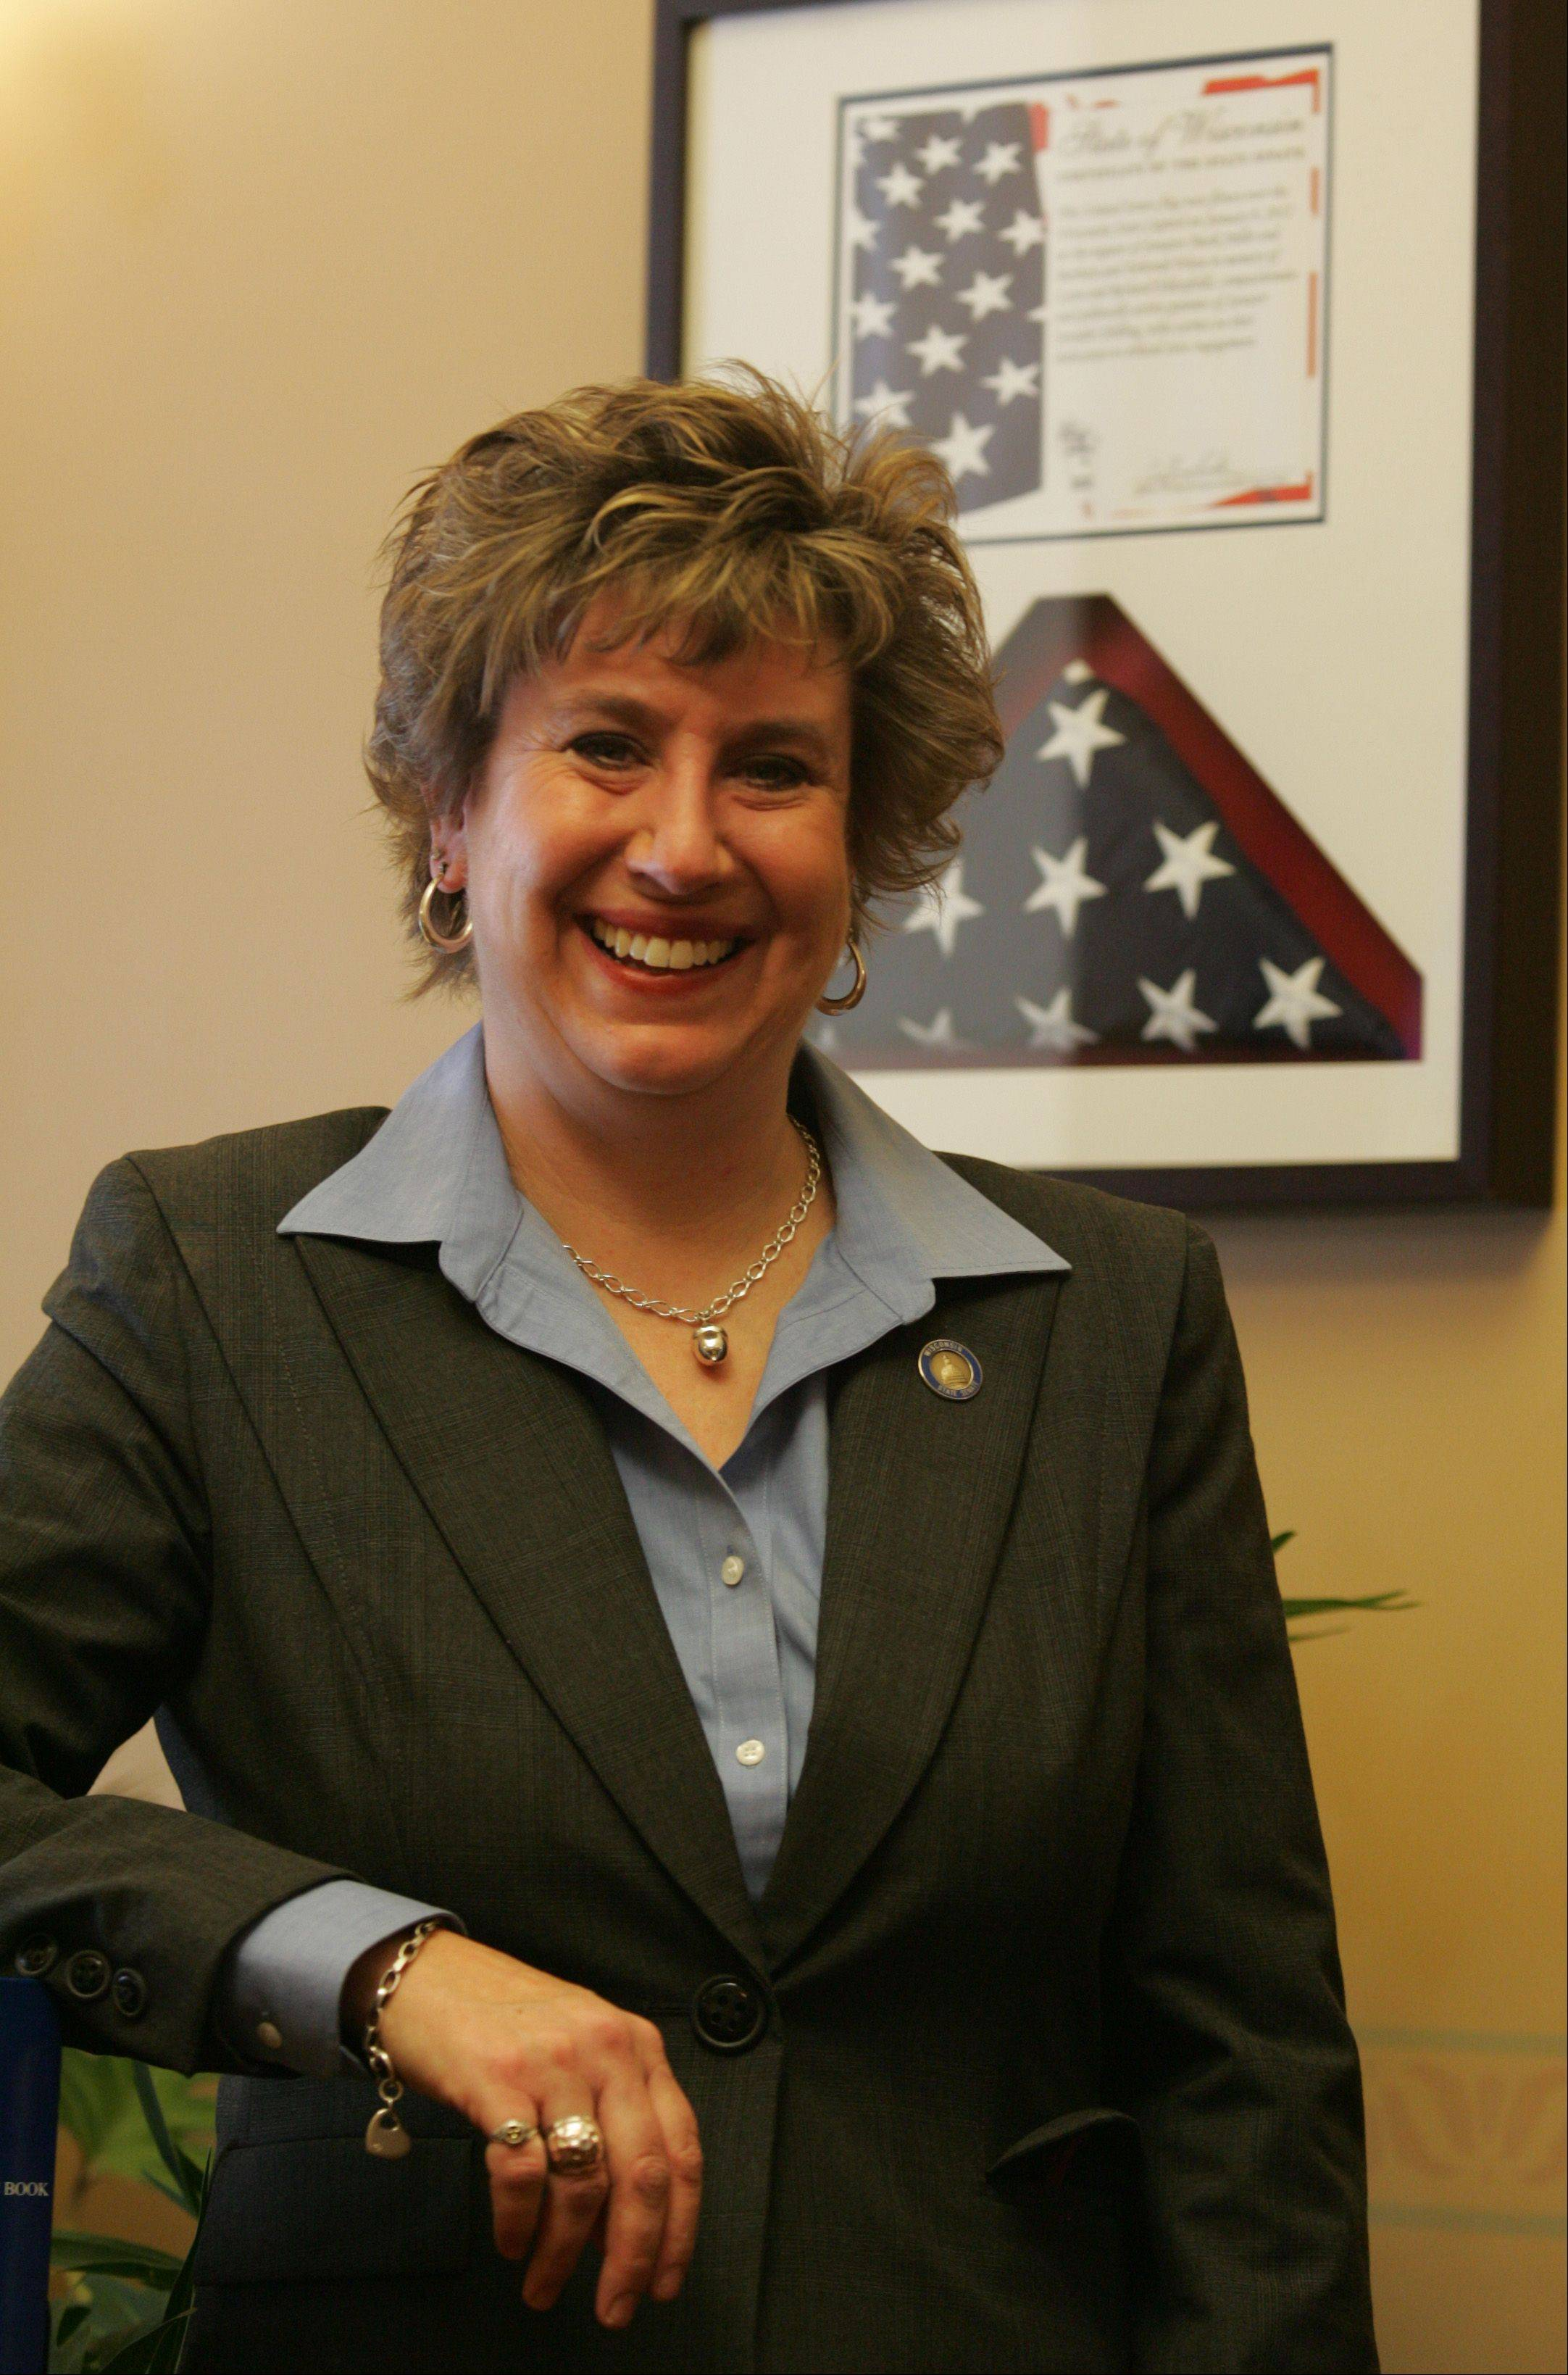 Wisconsin state Sen. Jennifer Ehlenfeldt Shilling keeps a flag in her office that was flown over the Capitol in Madison in honor of her parents, Richard and Lynn Ehlenfeldt, who were murdered 20 years ago at their Brown's Chicken & Pasta franchise in Palatine.